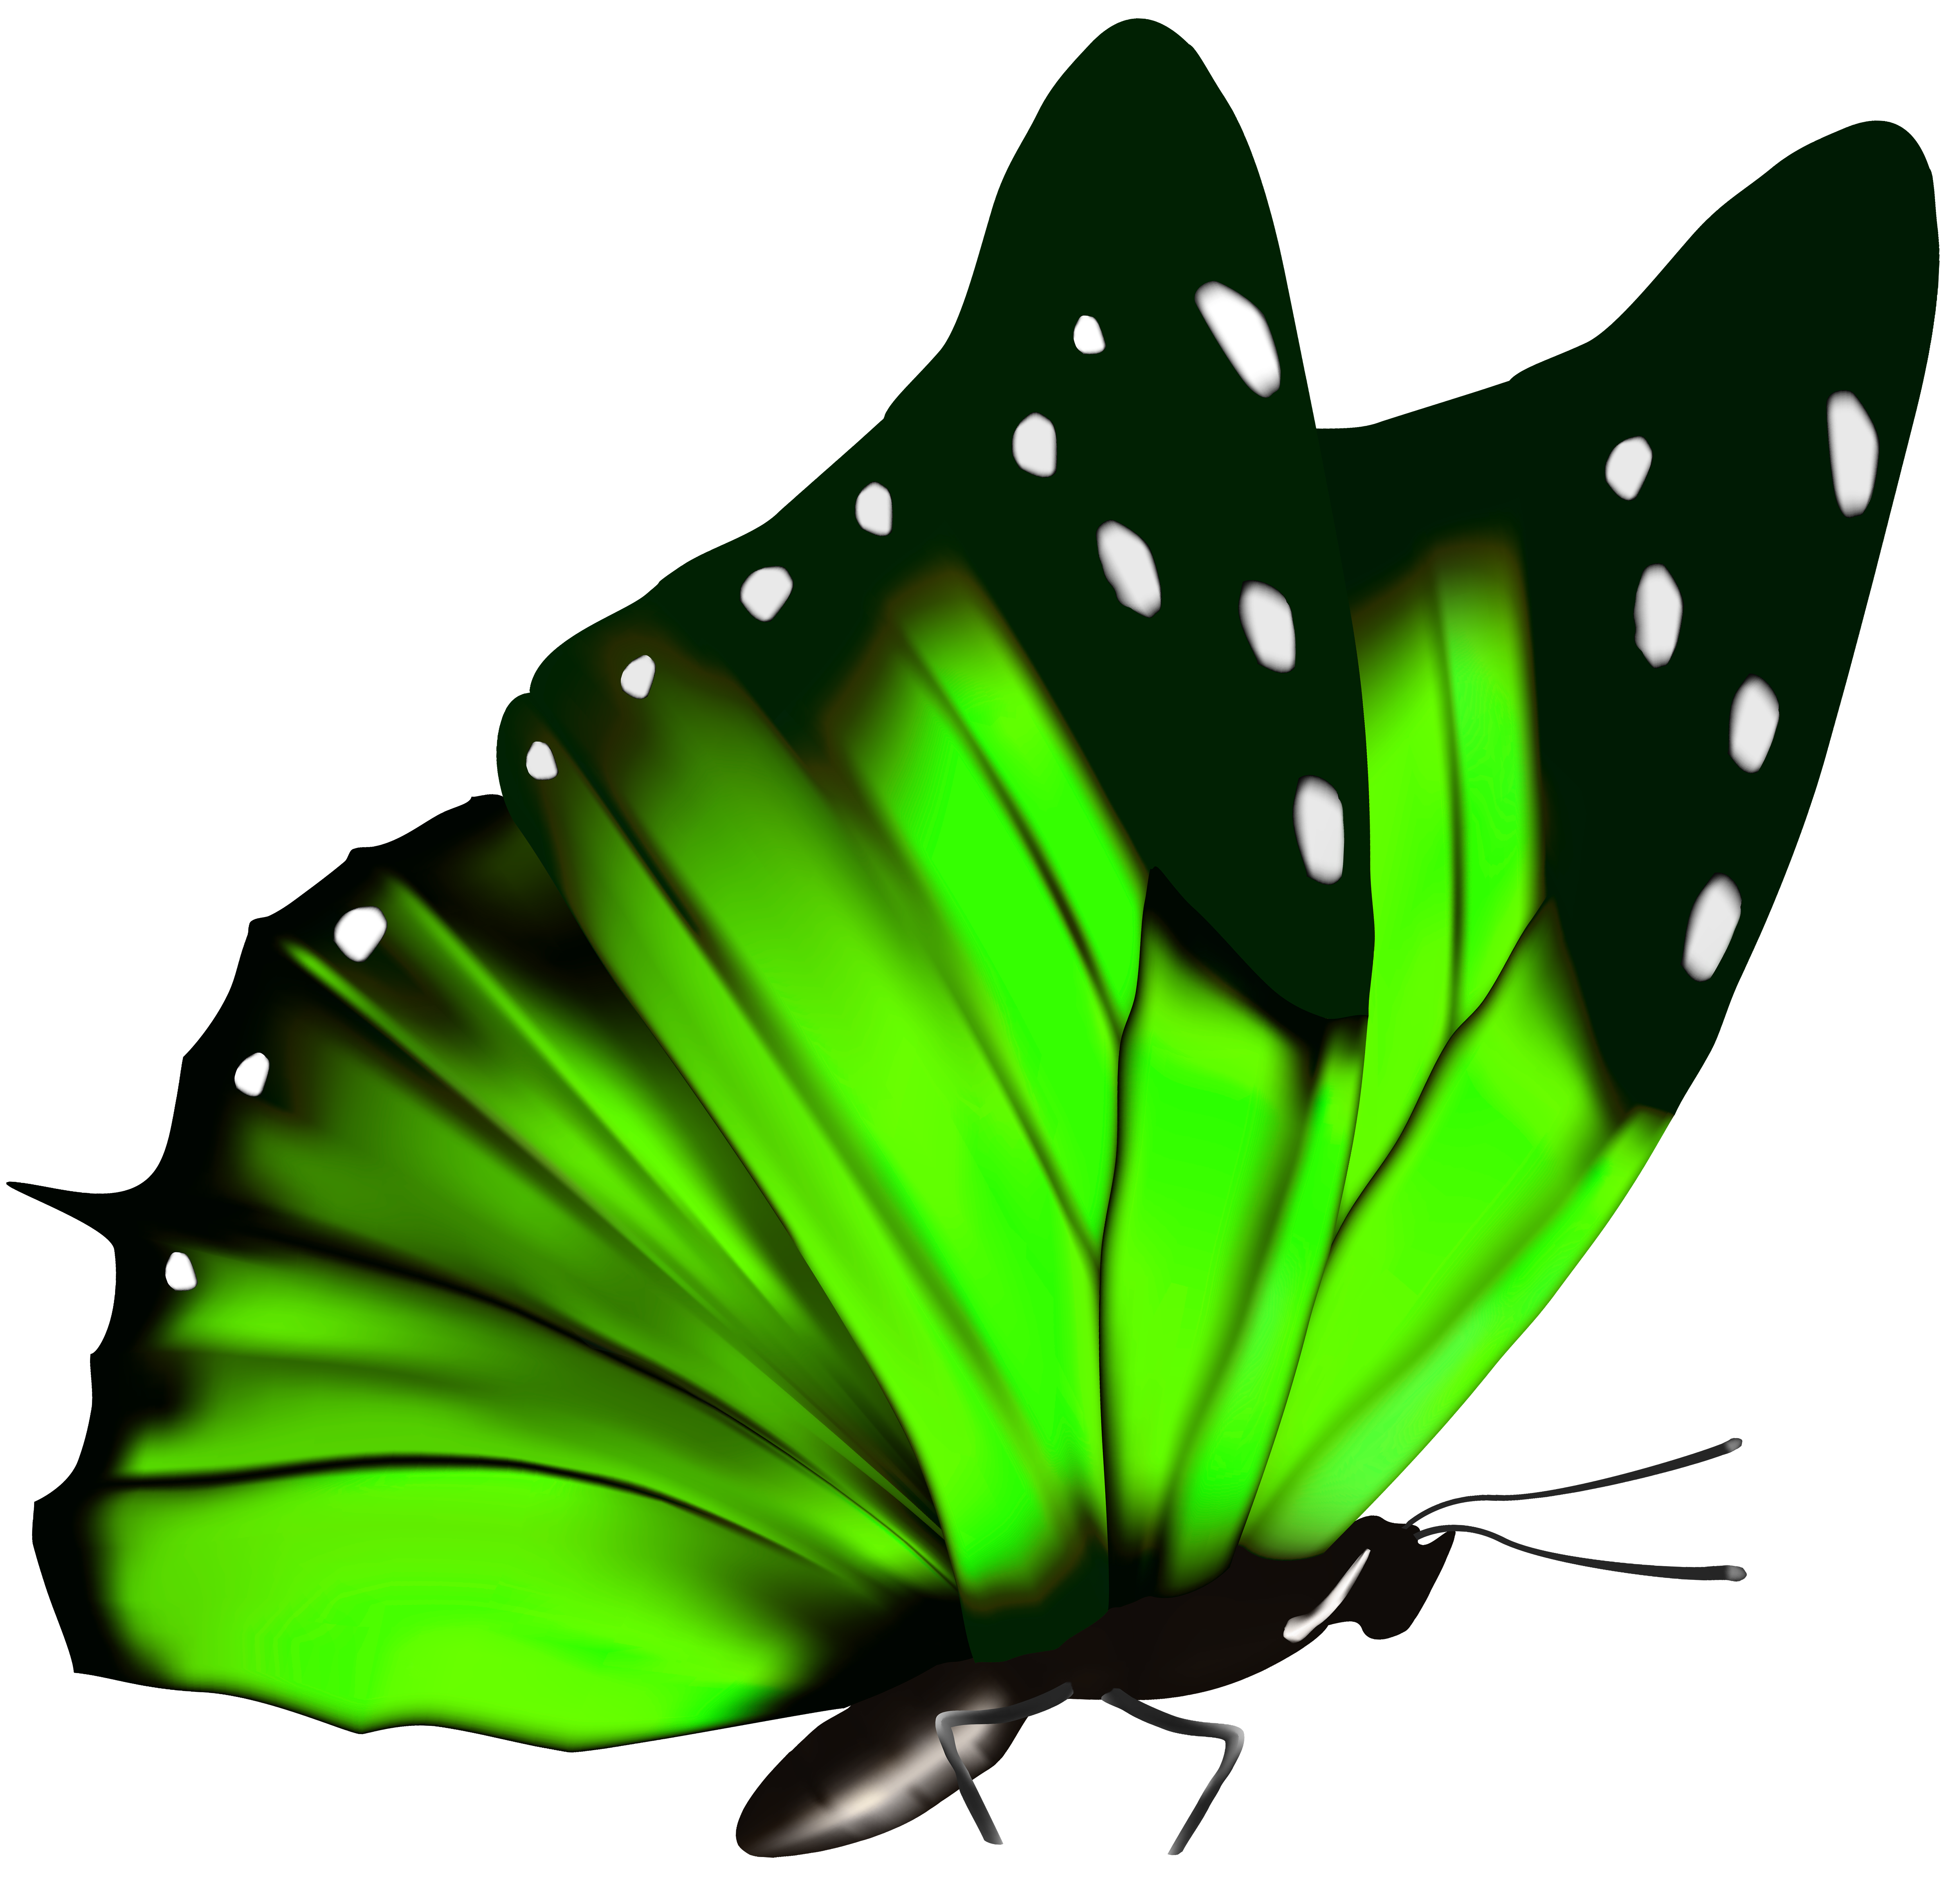 Clipart angel star wars x wing png transparent Green Butterfly PNG Clipart Image | Wings | Pinterest | Clipart ... png transparent